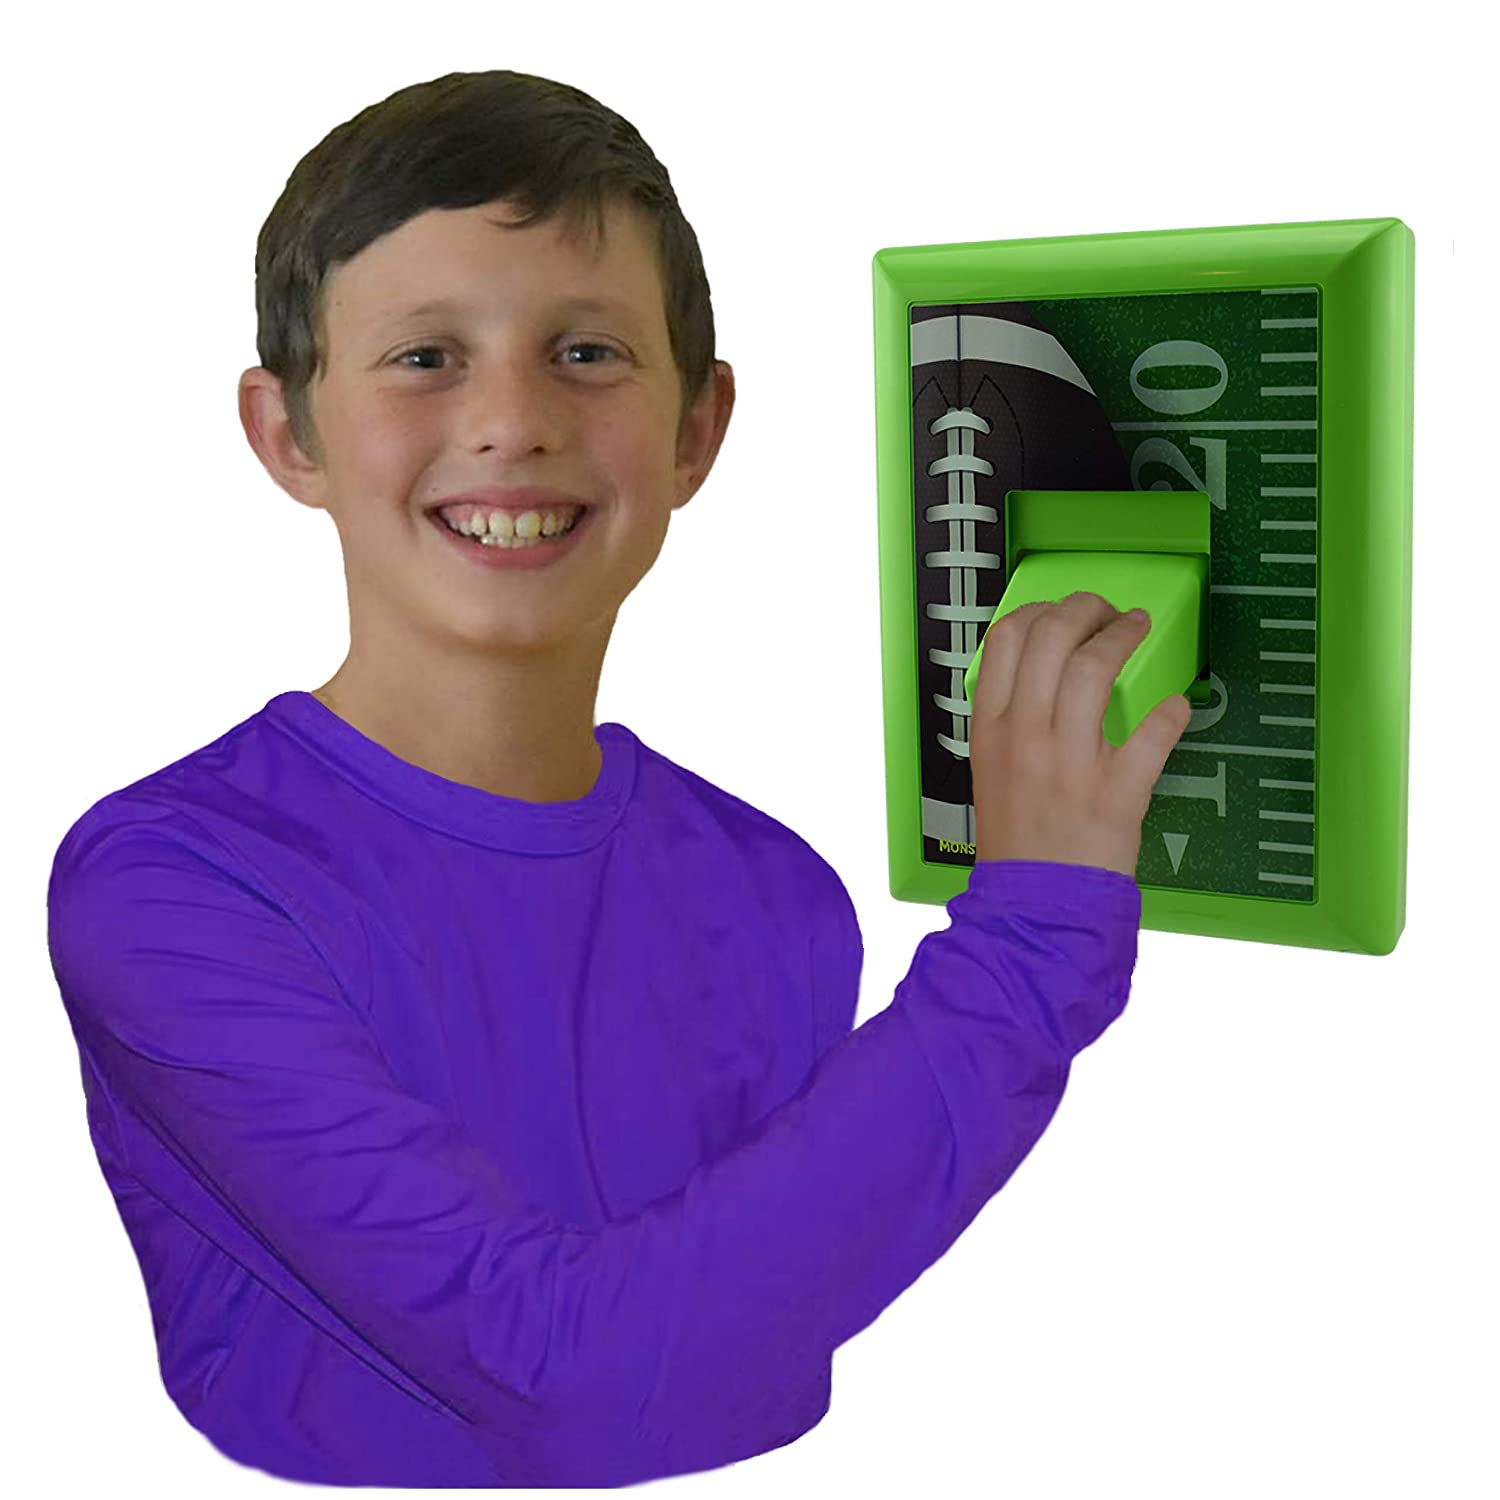 Amazon com: MonsterSwitch - Kids Love it - It's Huge, Fun and Unique